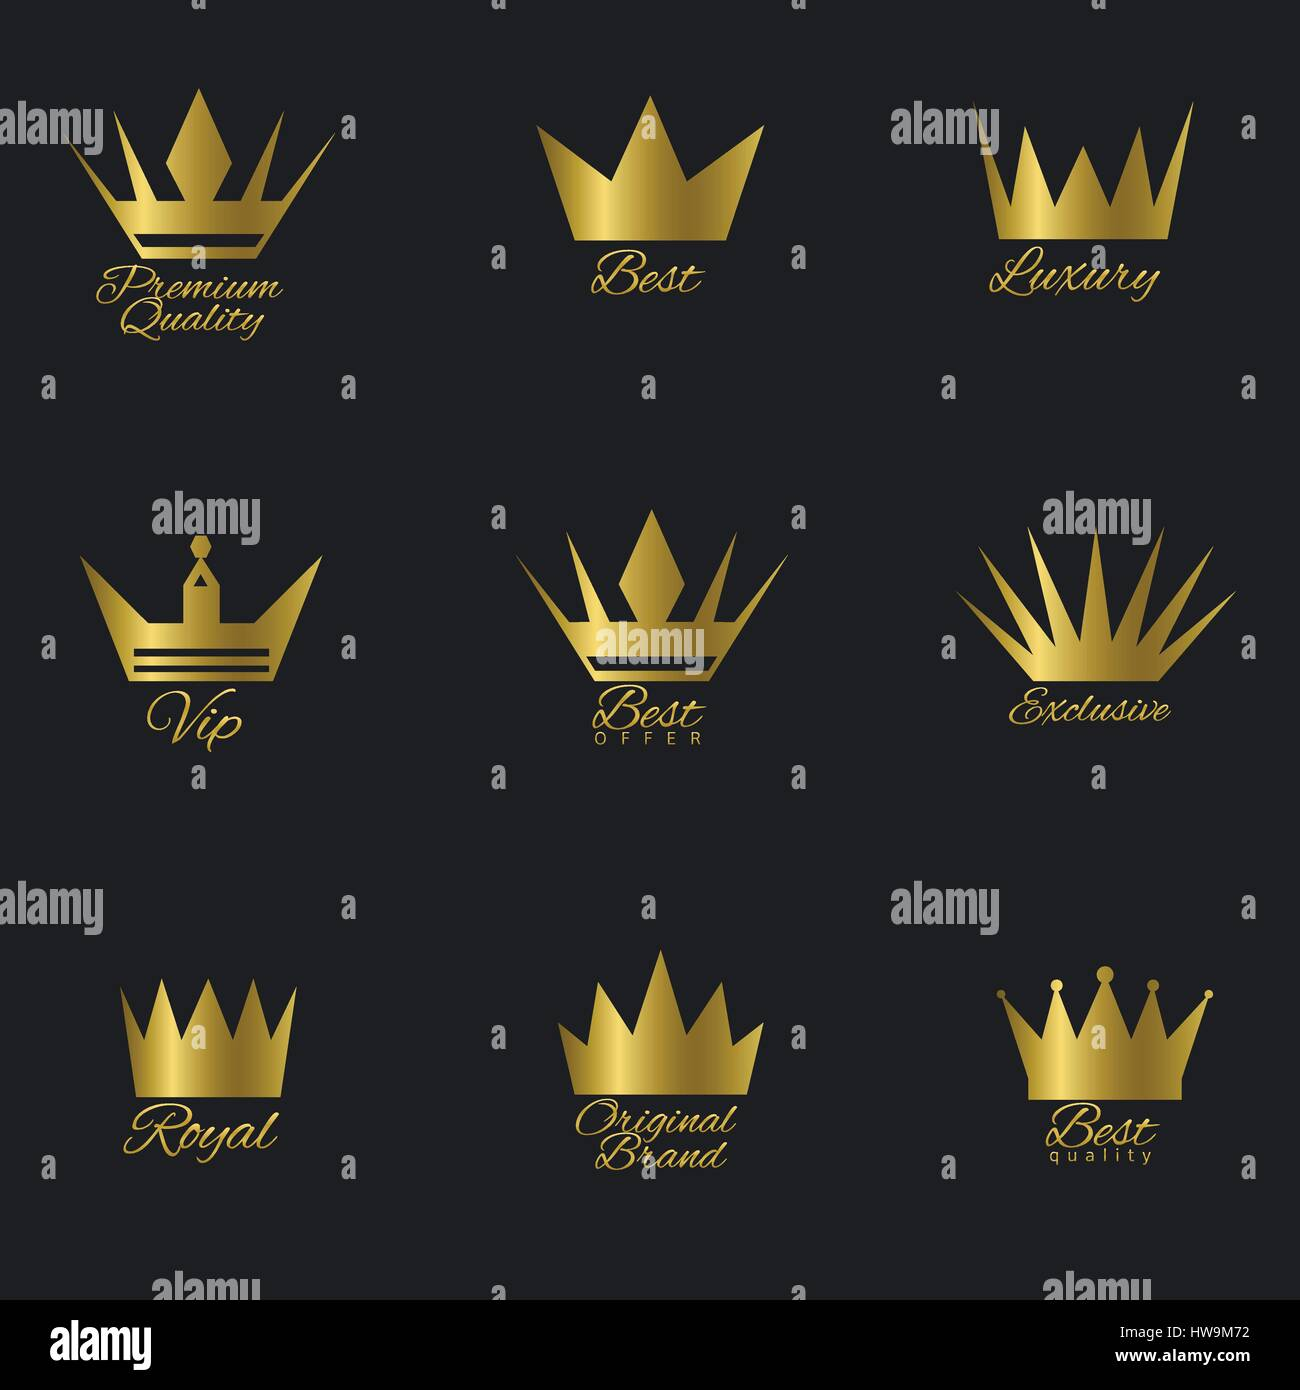 Golden Crown set - Stock Image